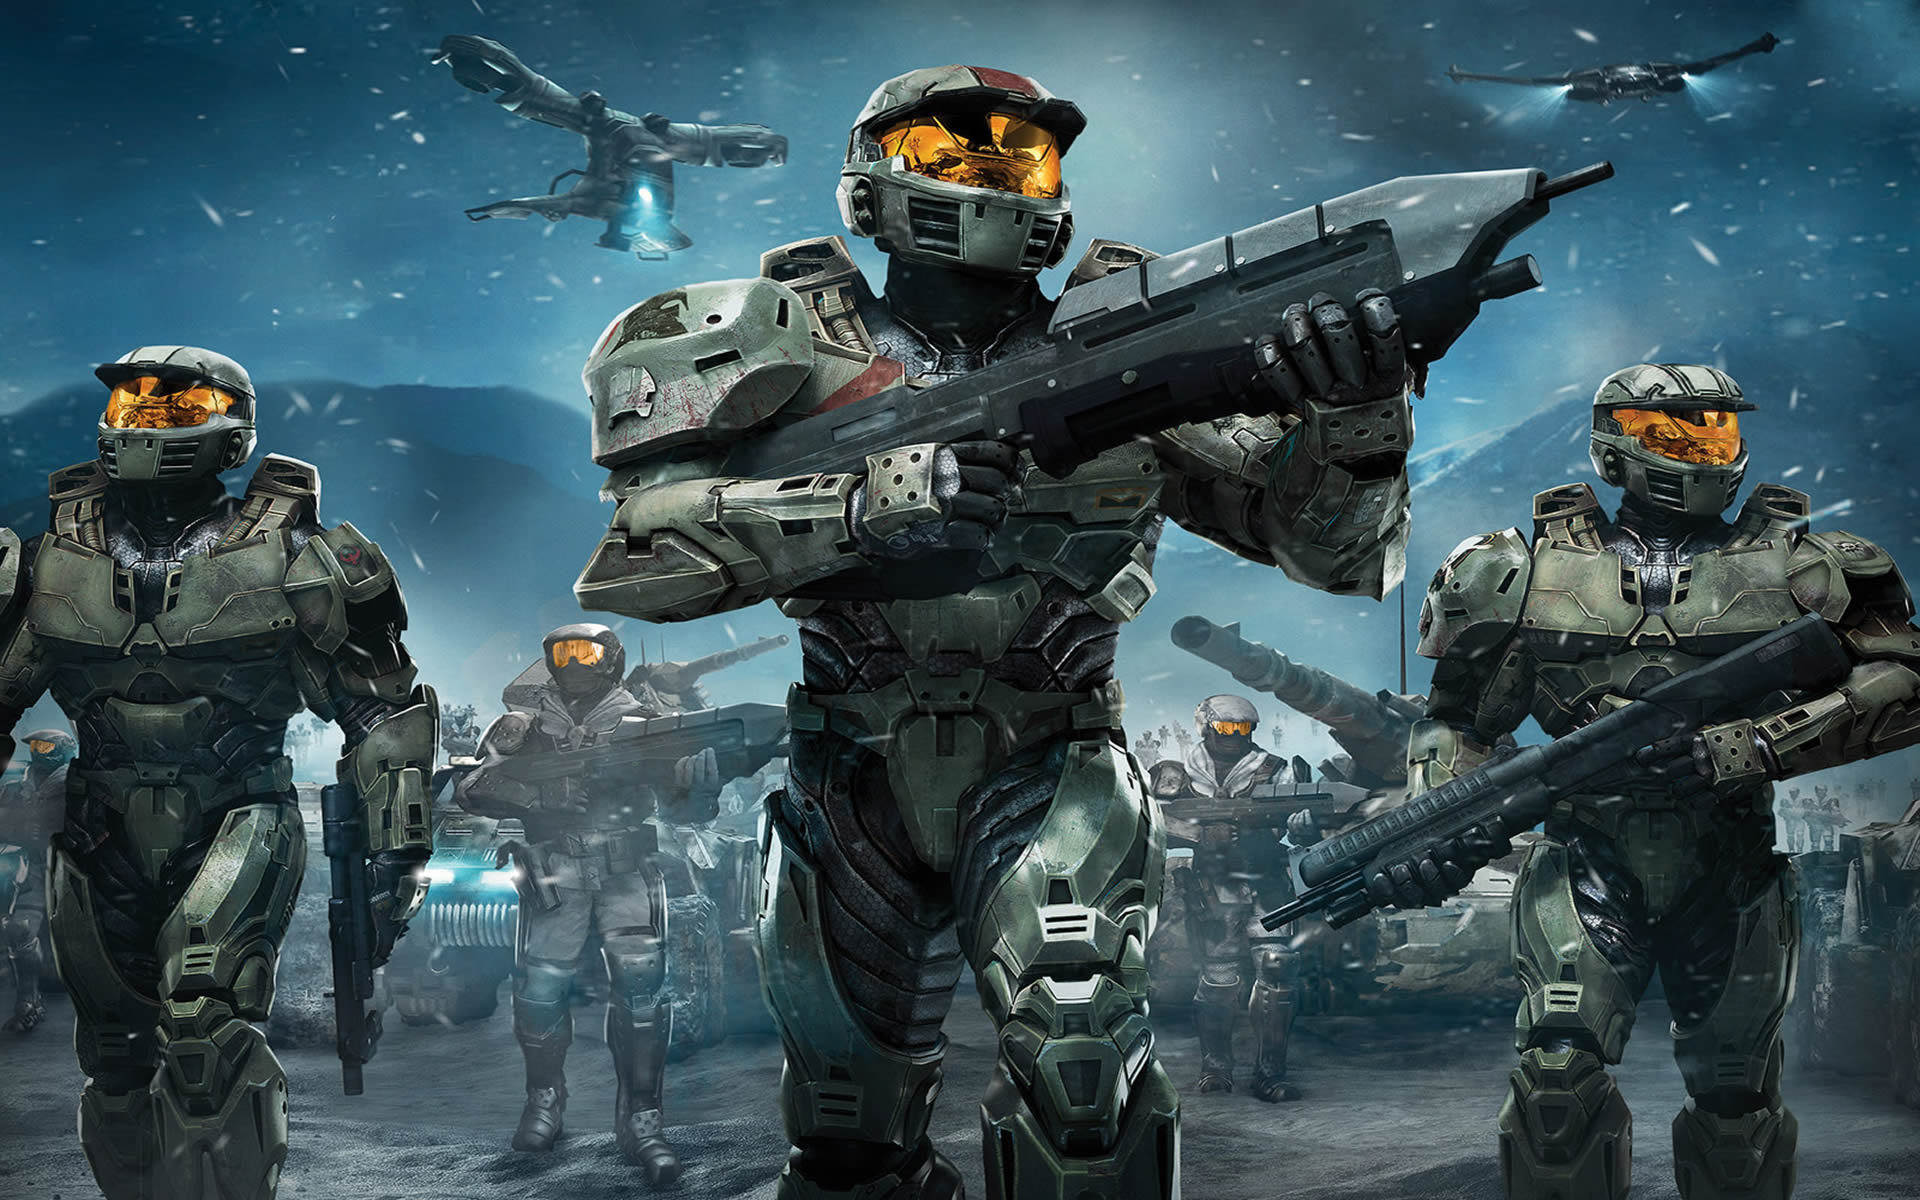 Space Command   Action Games Wallpaper Image featuring Halo Wars 1920x1200